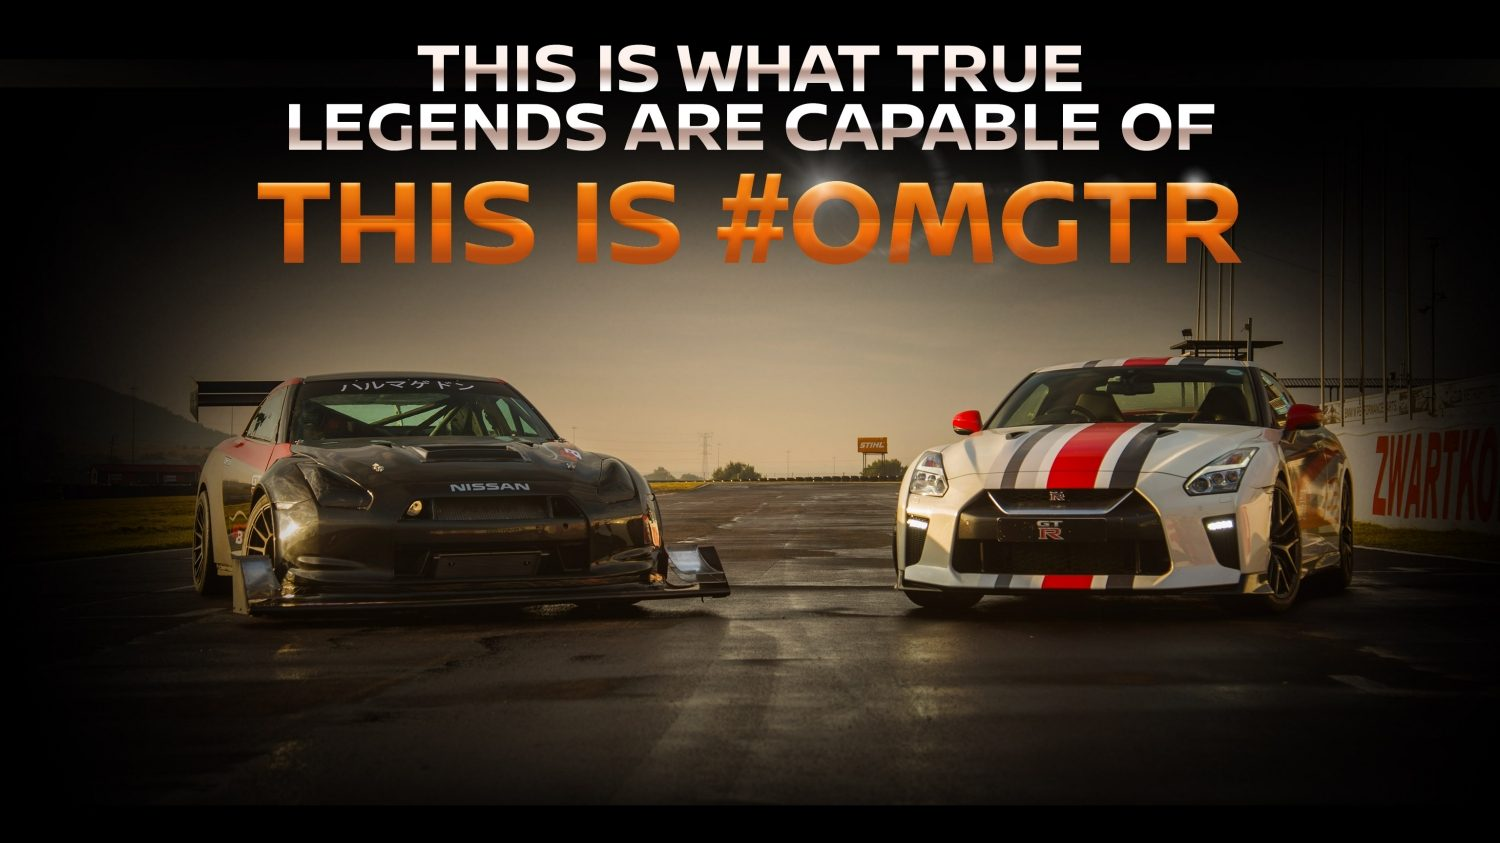 With top drivers and vehicles contending for the king of the hill title at simola competition was fierce but the gt r conquered both the competition and